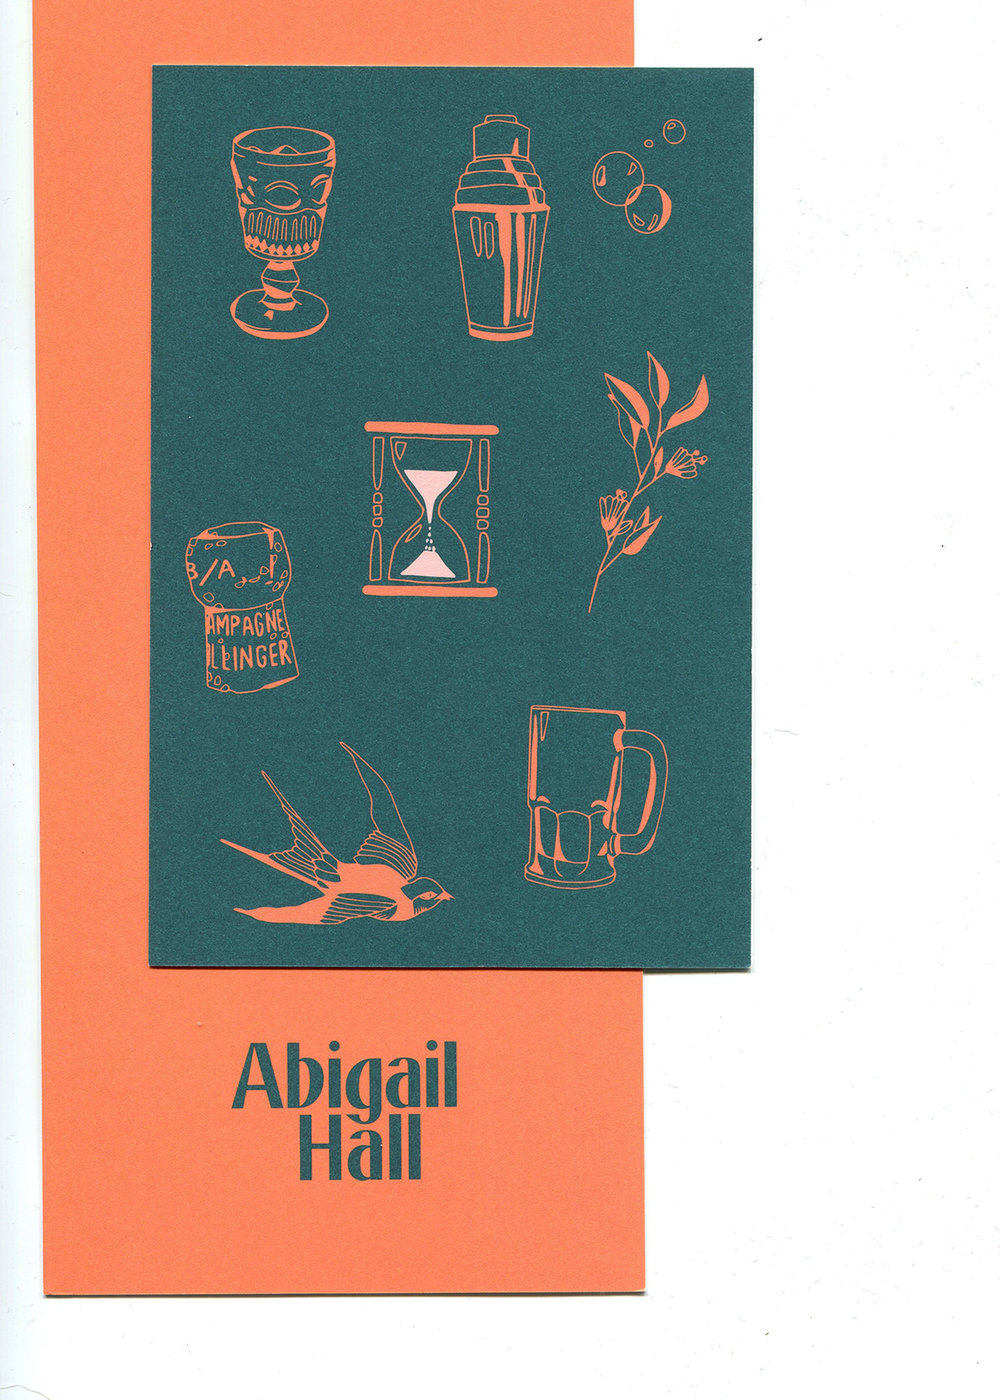 abigail hall product shot 1.jpg